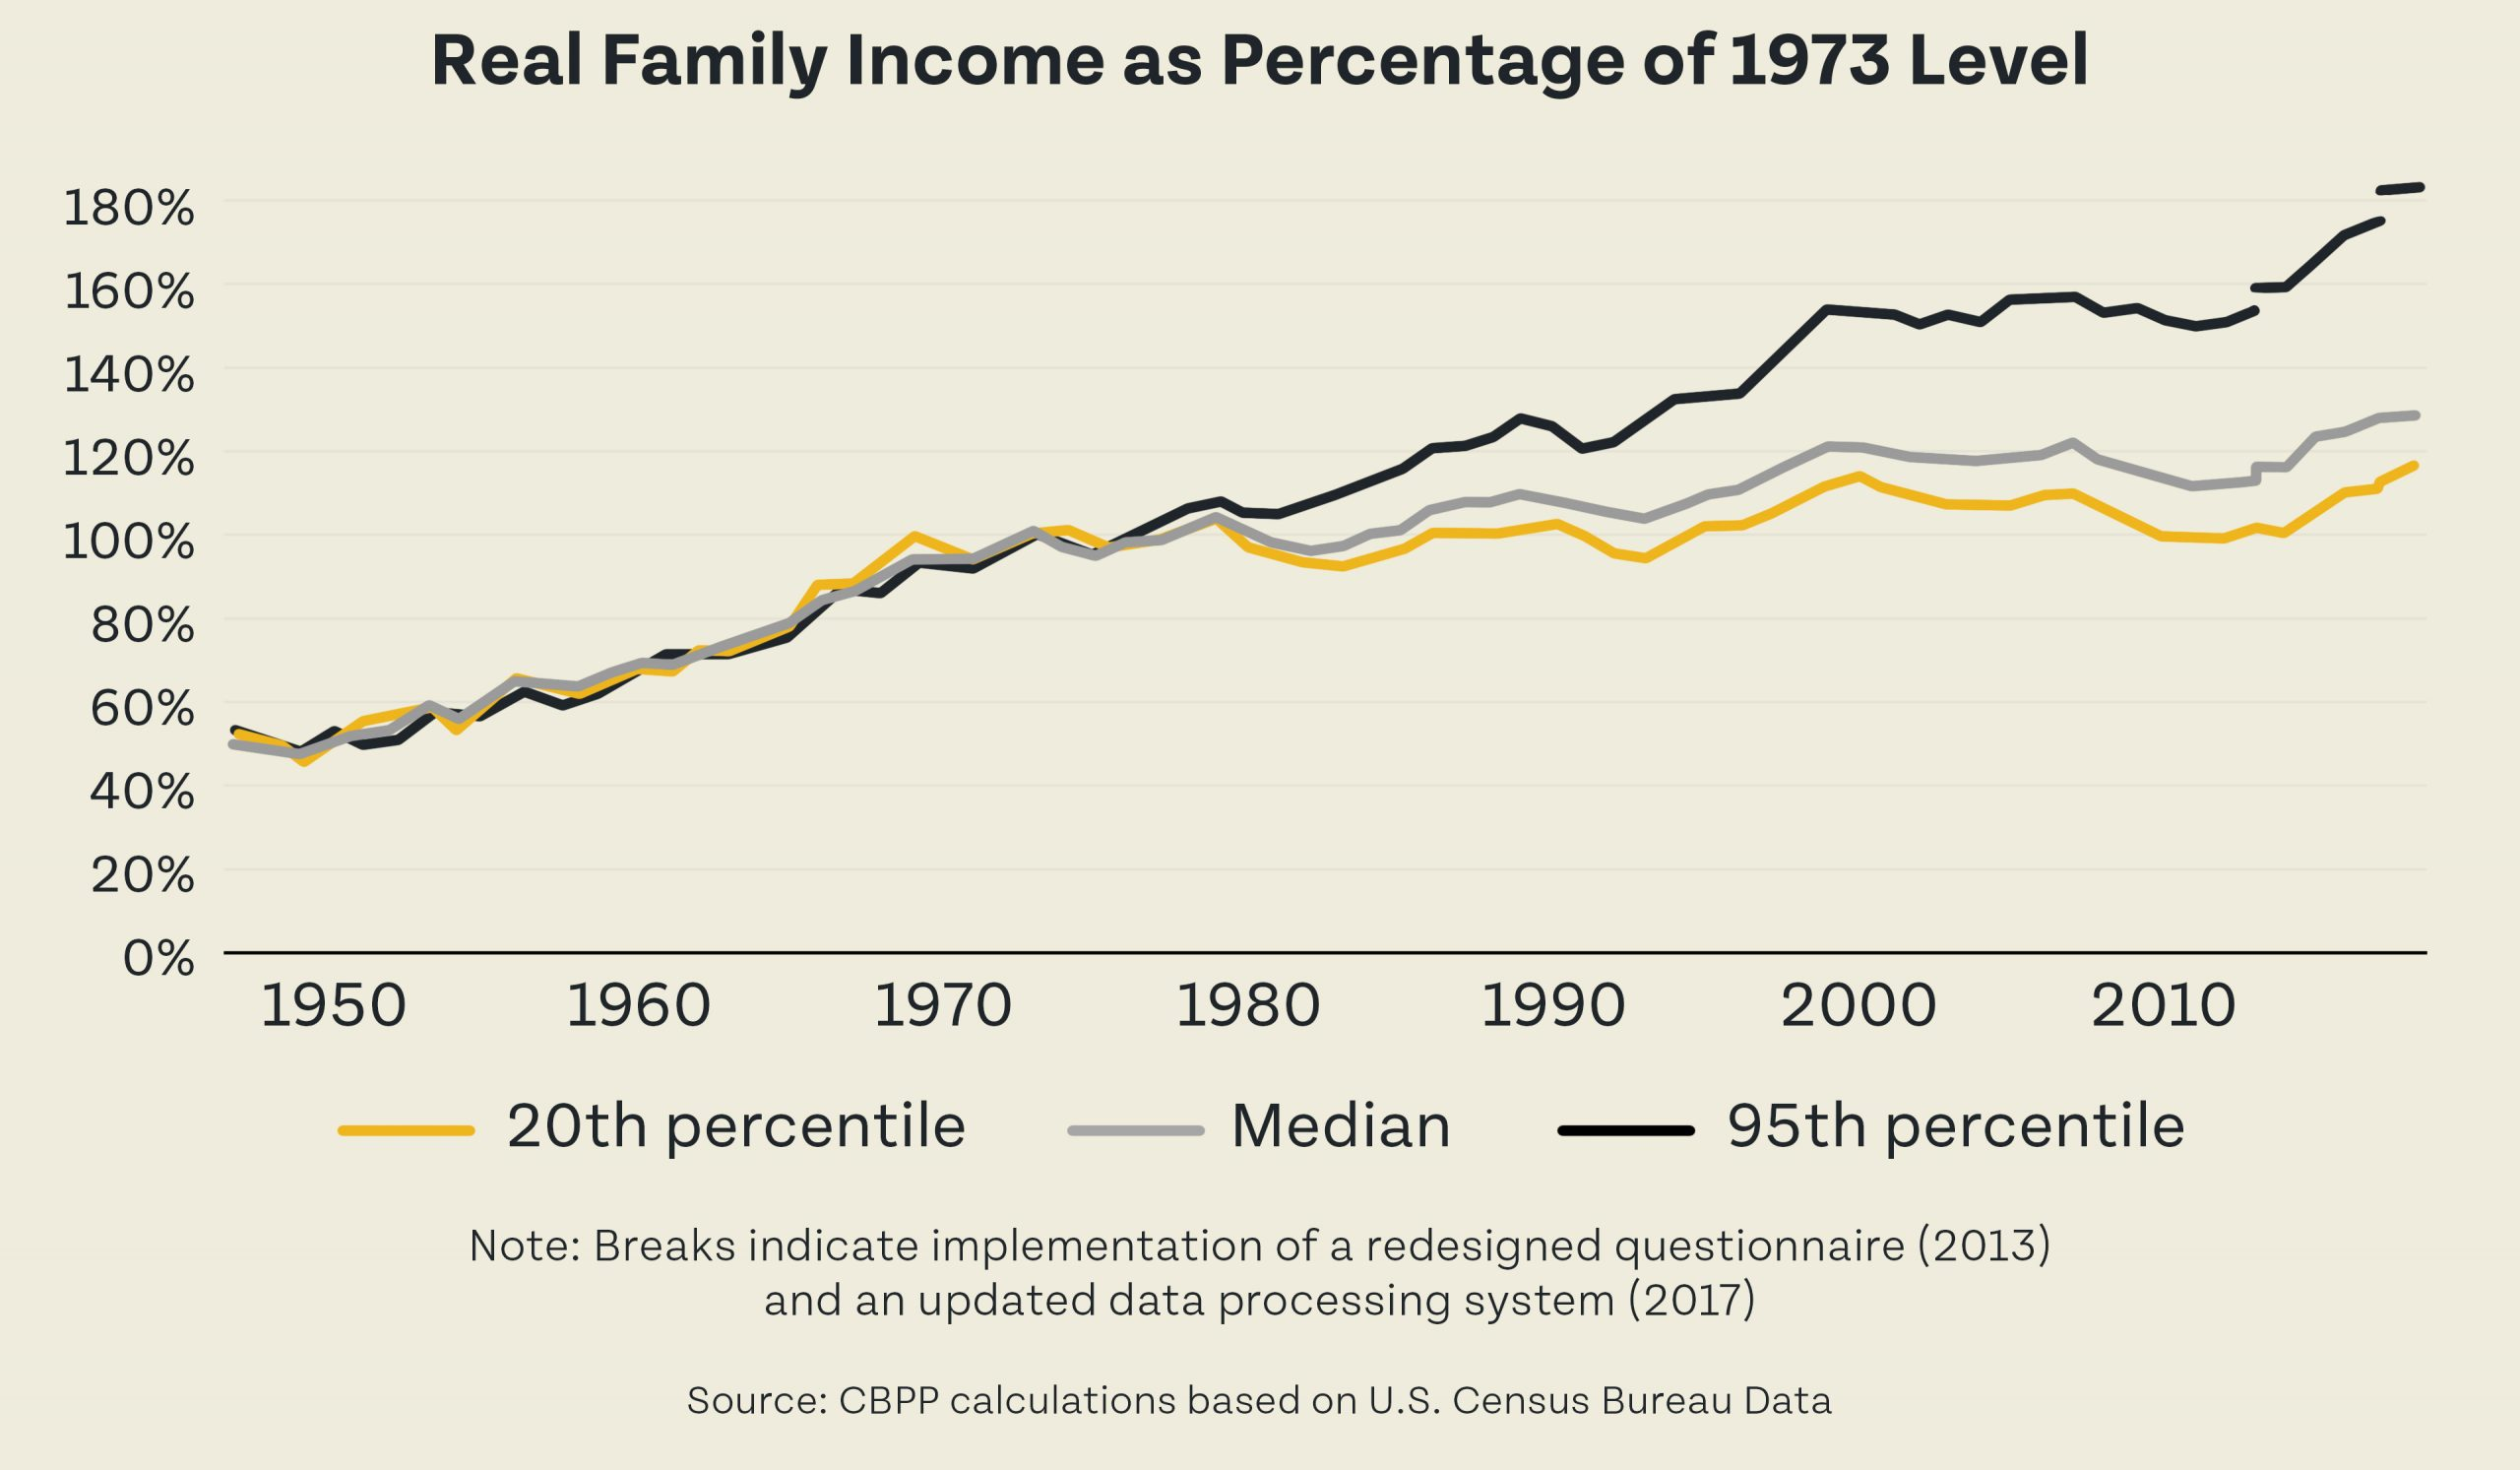 Real Family Income as Percentage of 1973 Level